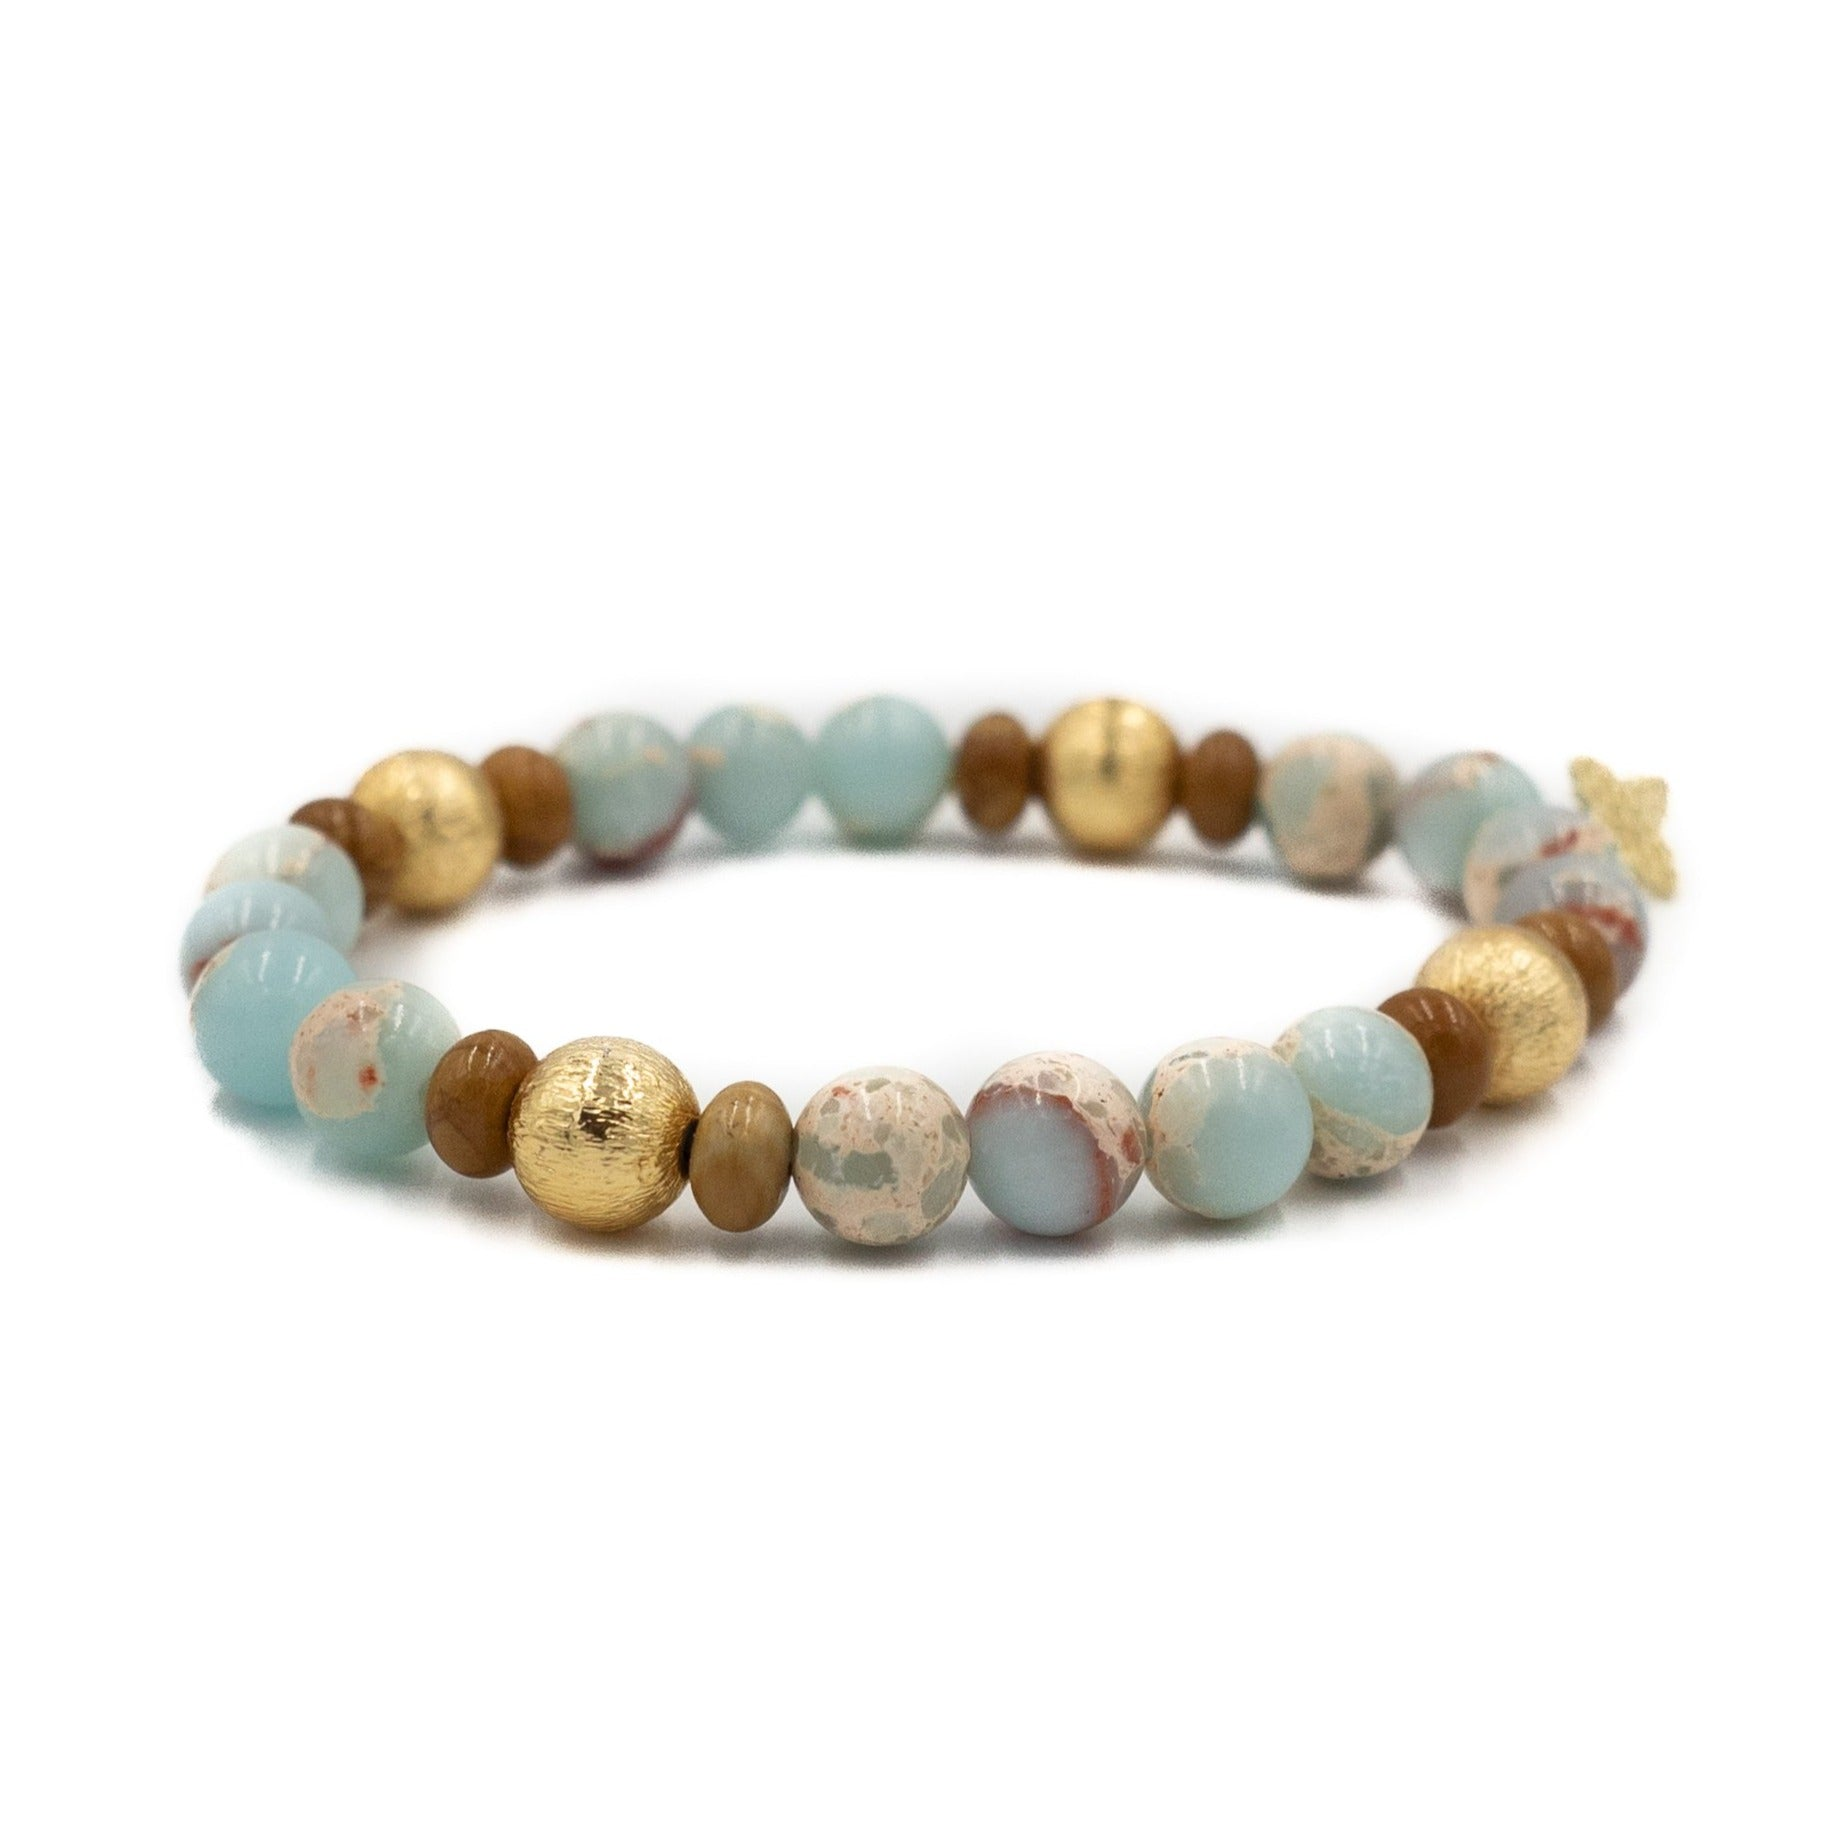 Blossom Bracelet, Aquaterra and Brown